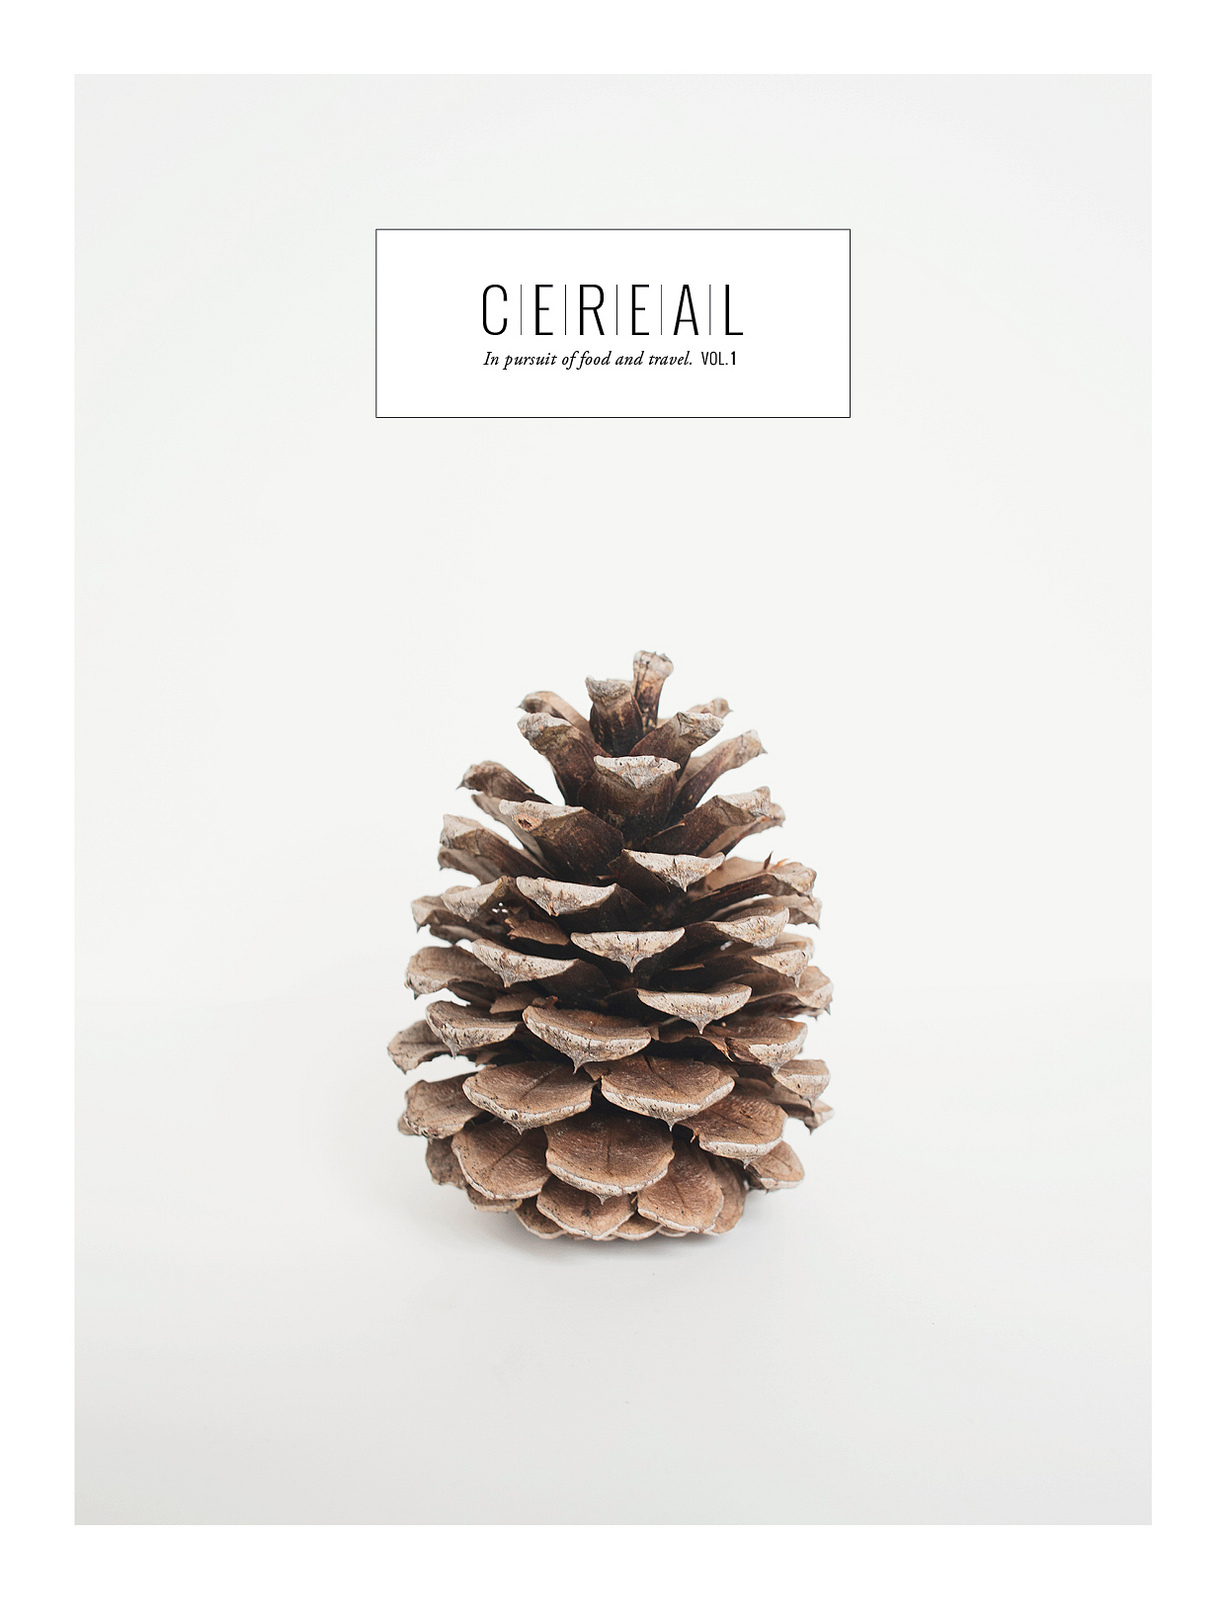 At work with: Rosa Park, Cereal Magazine.